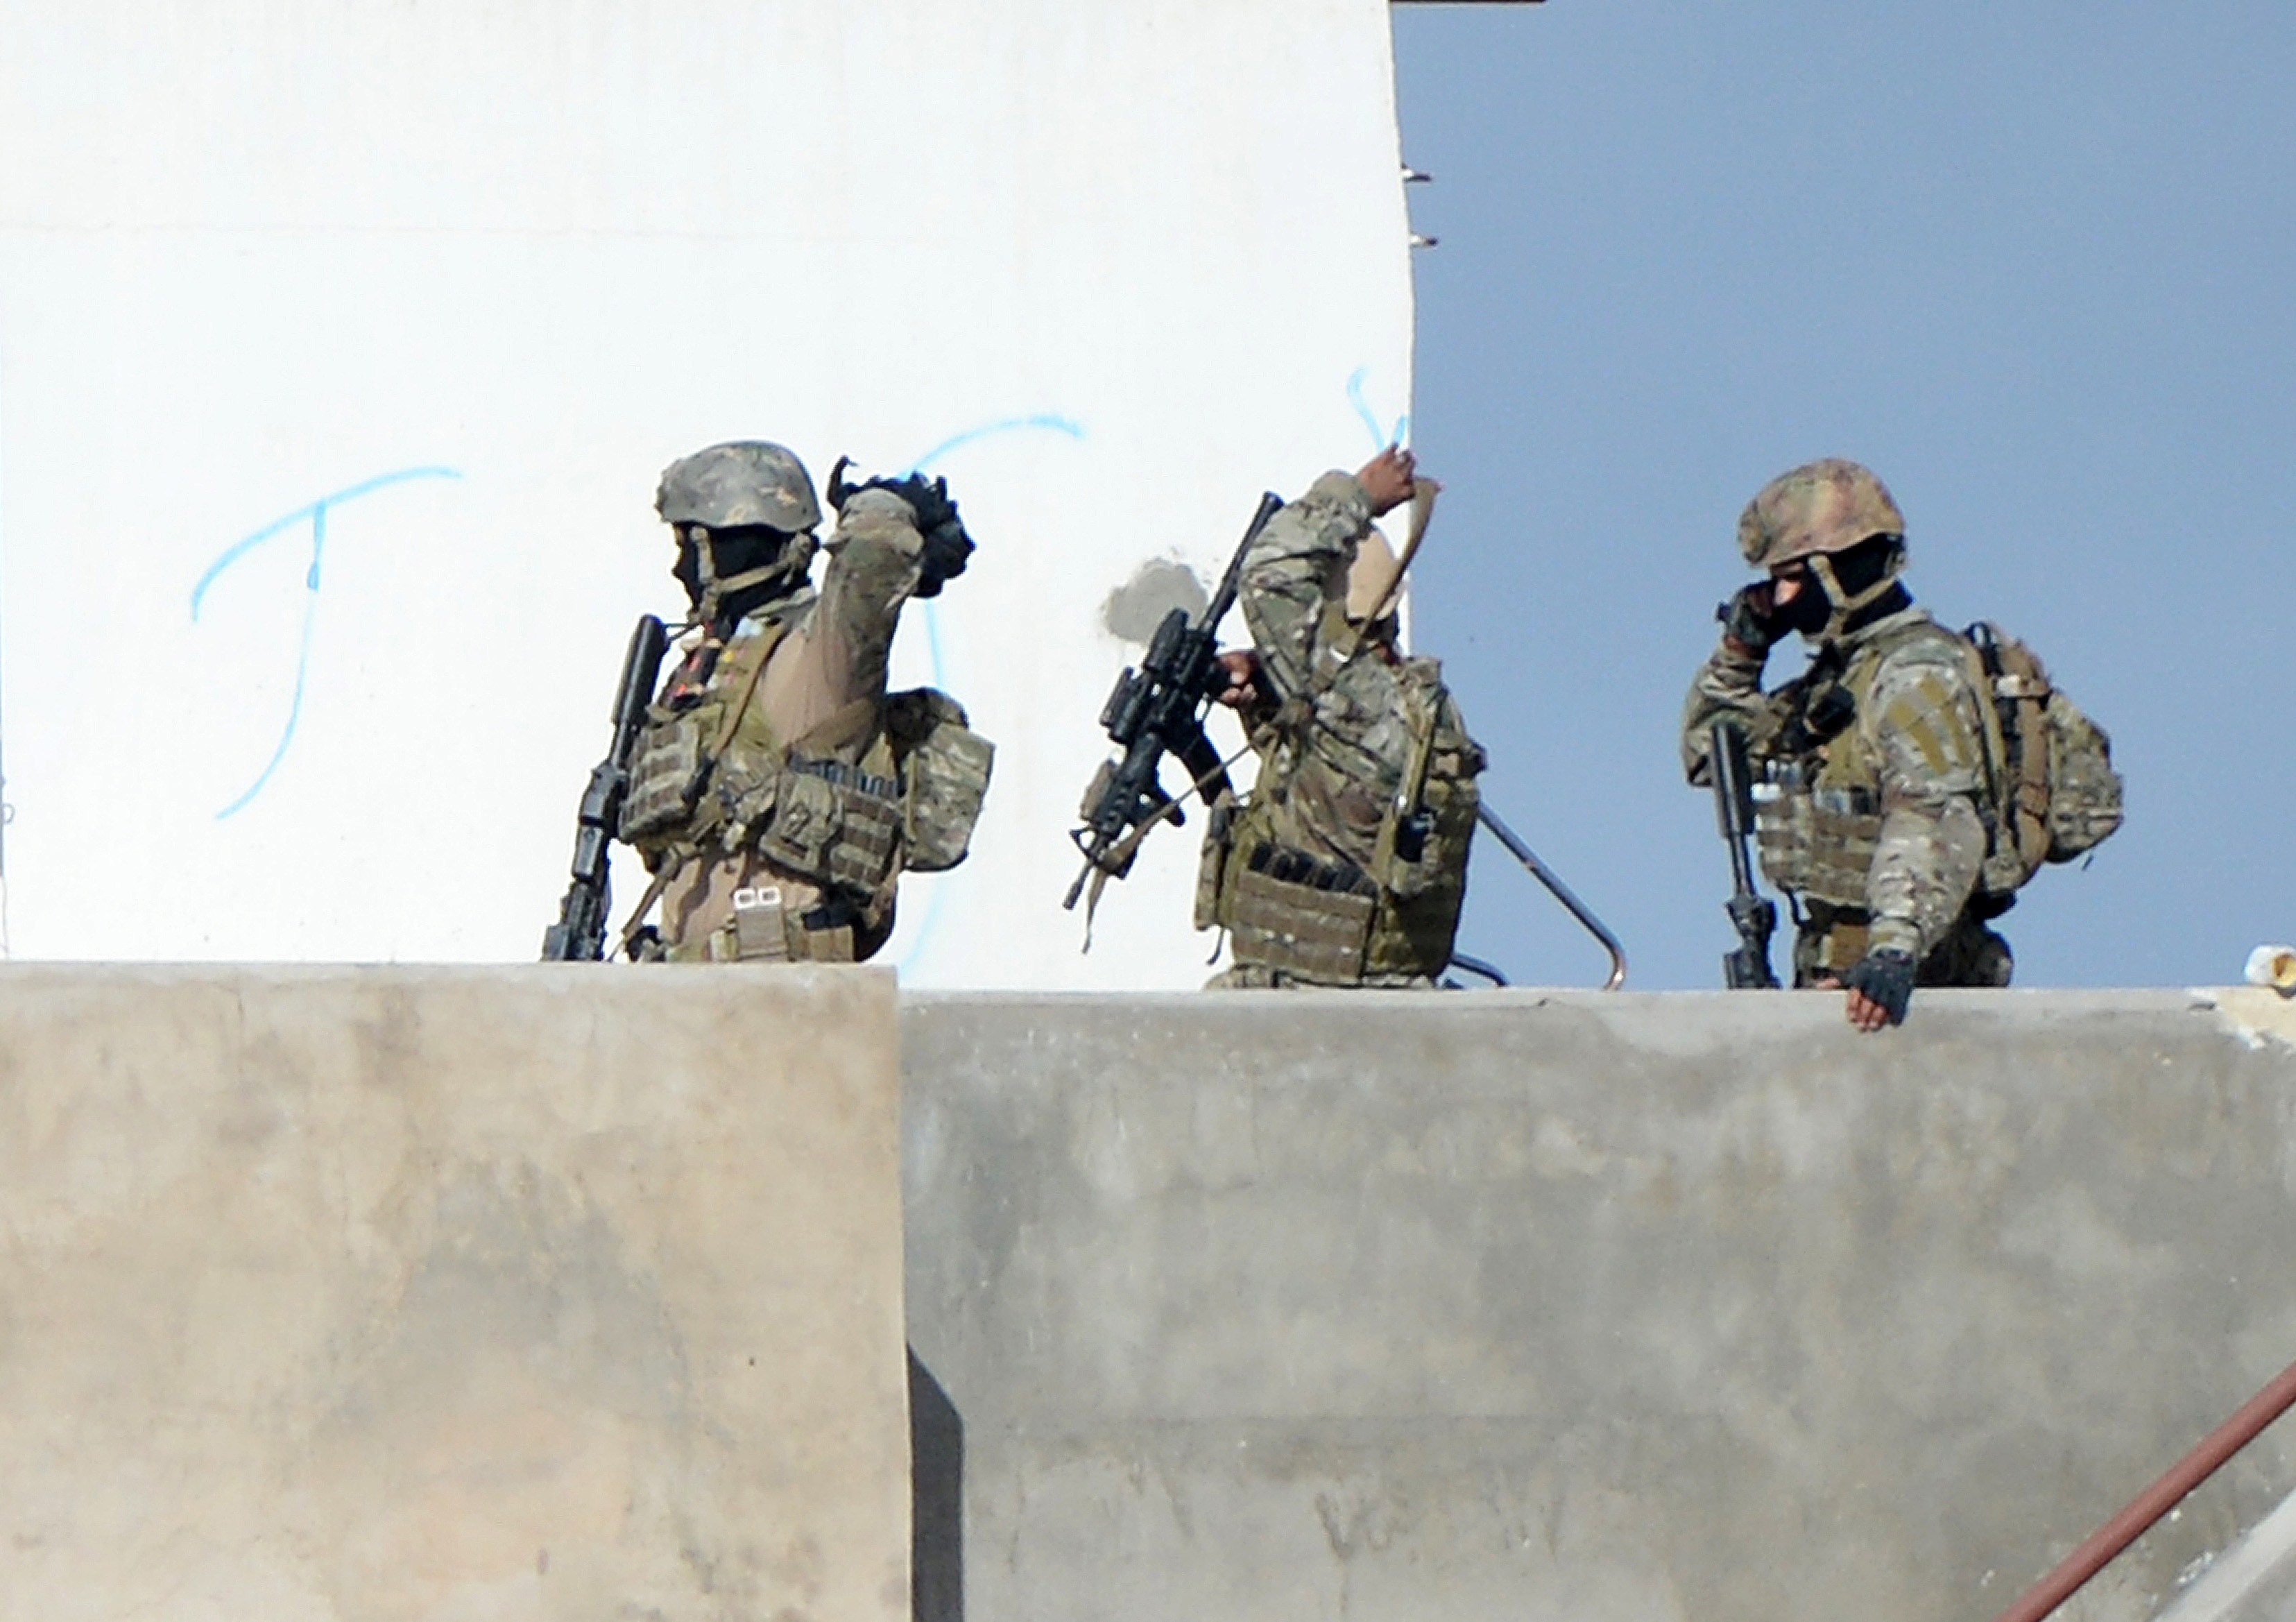 Members of the Tunisian military walk on a balcony during an operation against gunmen in the town of Oued Ellil near the Tunisian capital Tunis on Oct. 24, 2014.